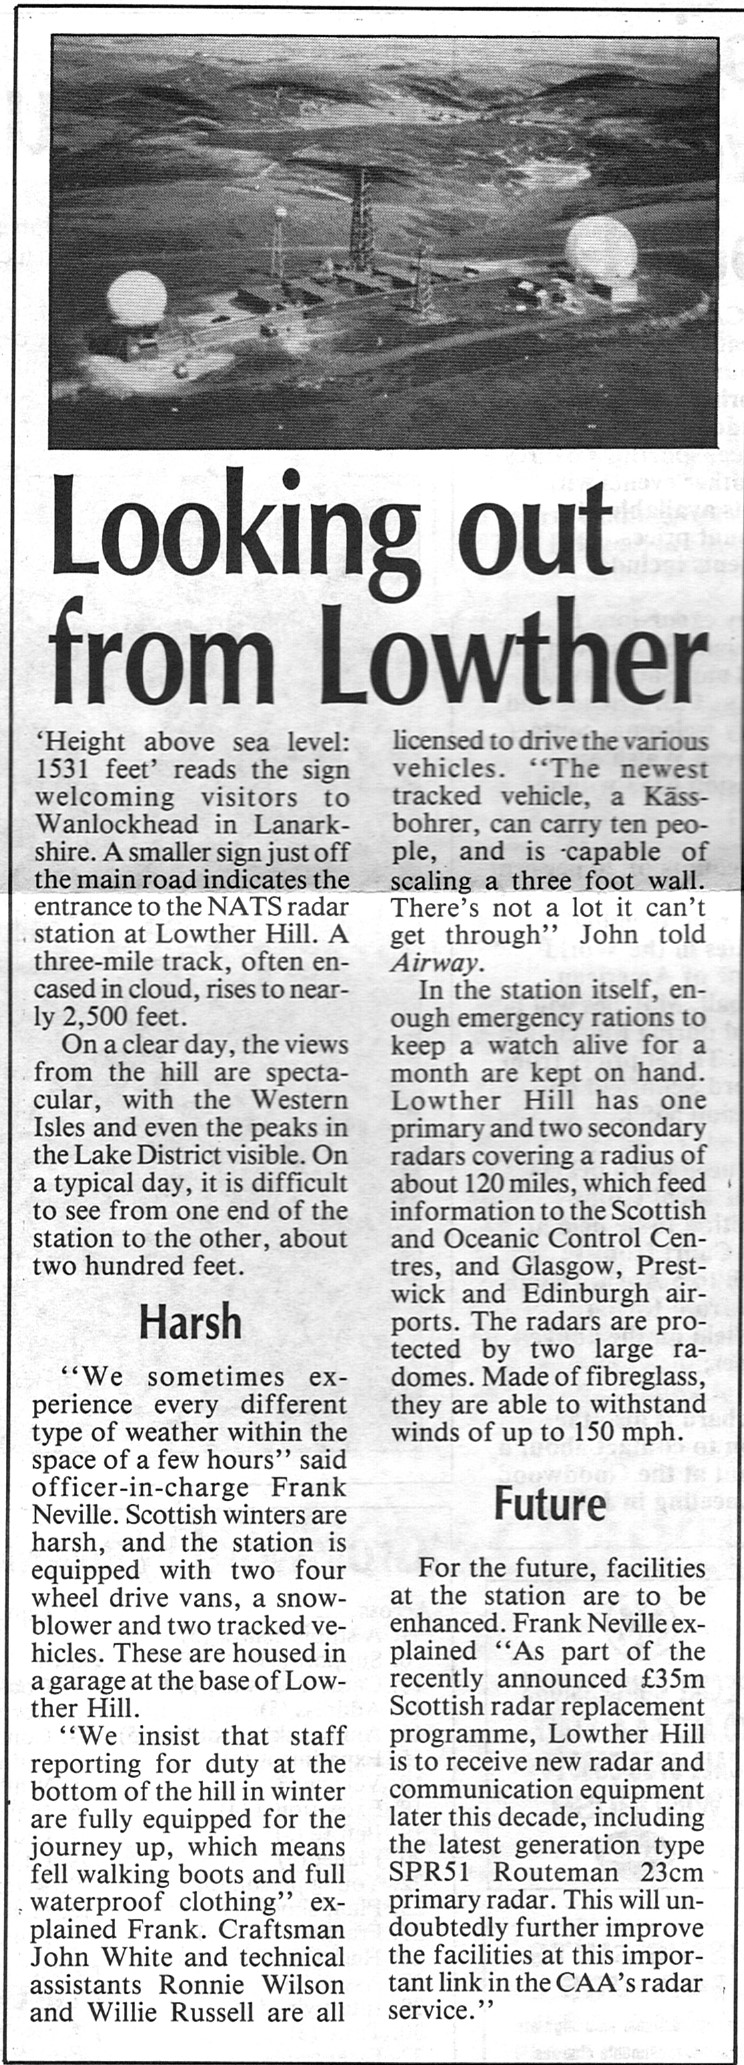 LOWTHER HILL ARTICLE